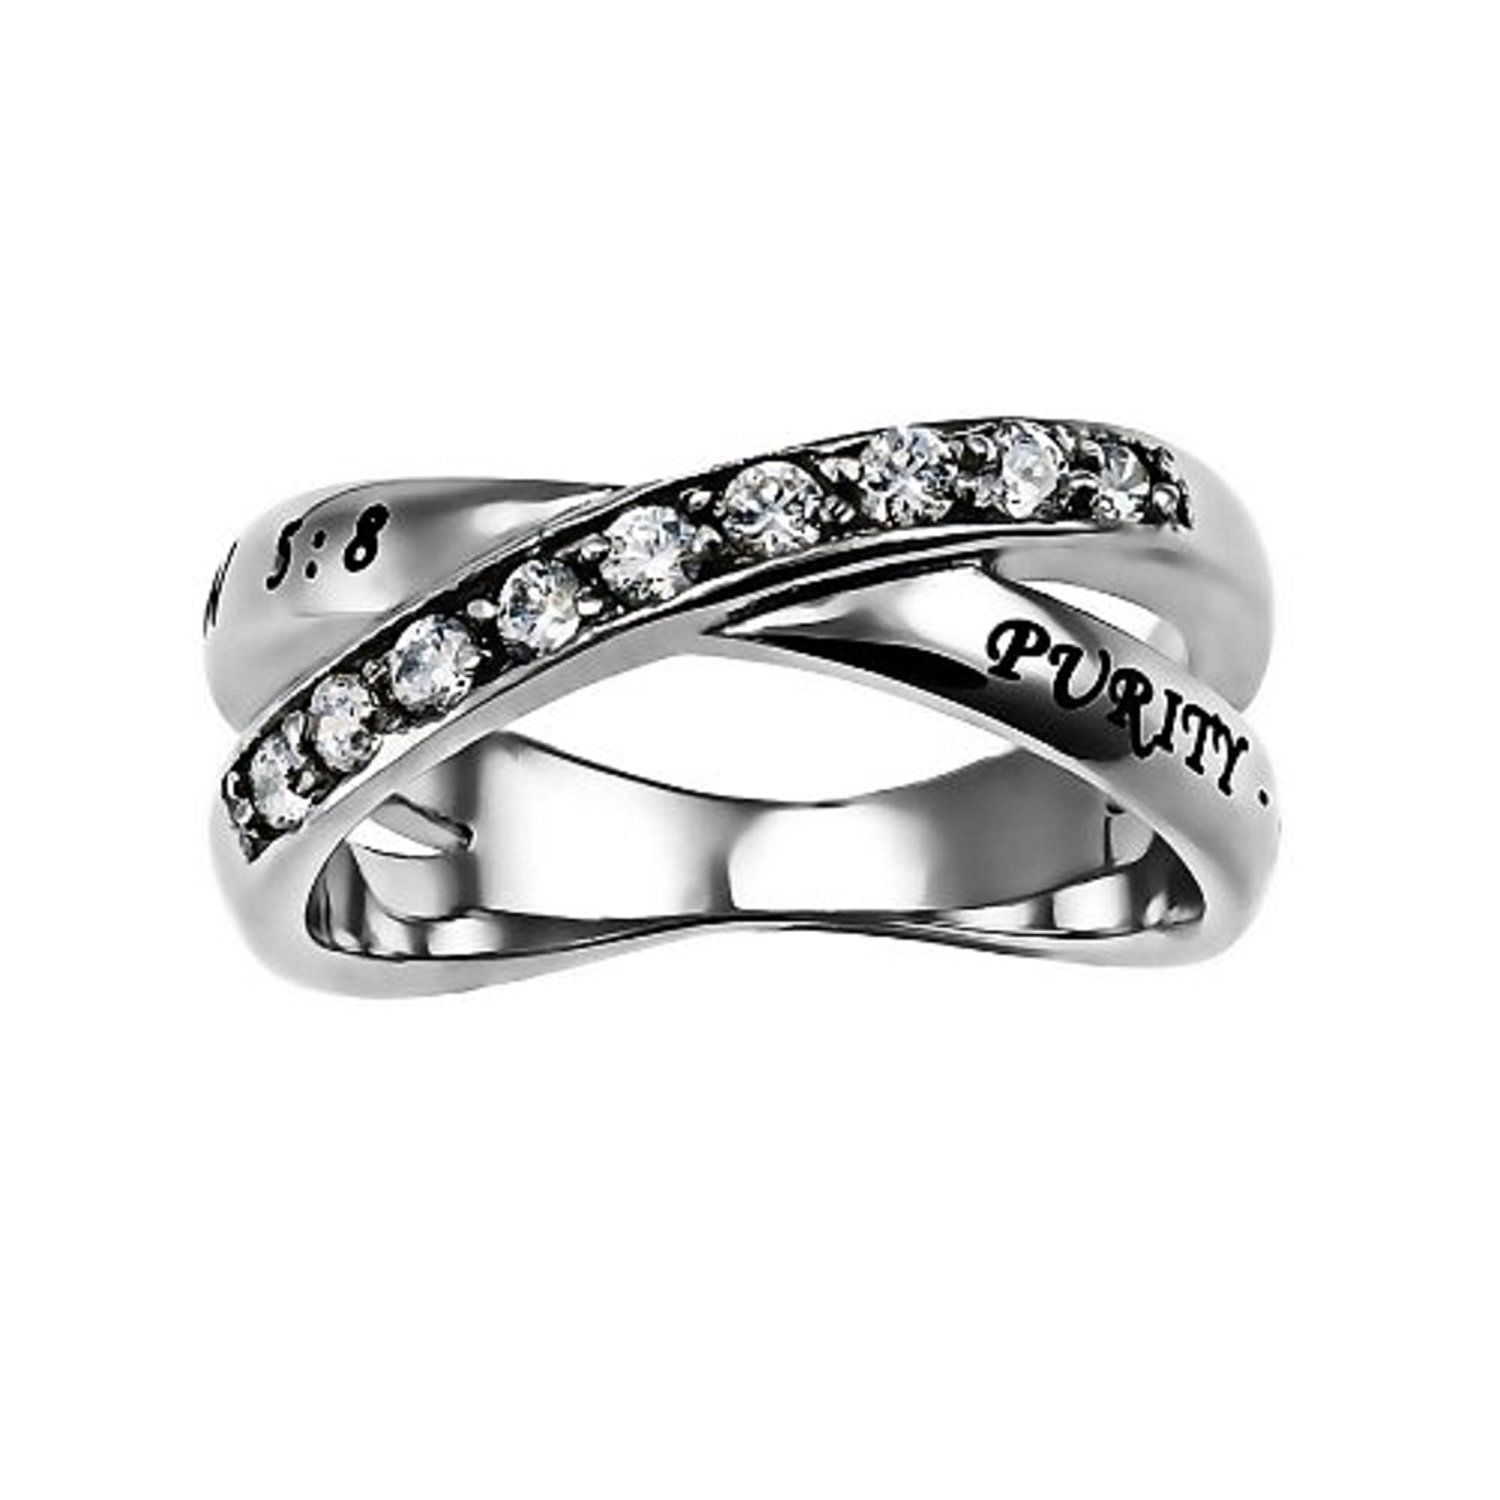 Purity Radiance Ring Silver Stainless Steel Cubic Zirconium With